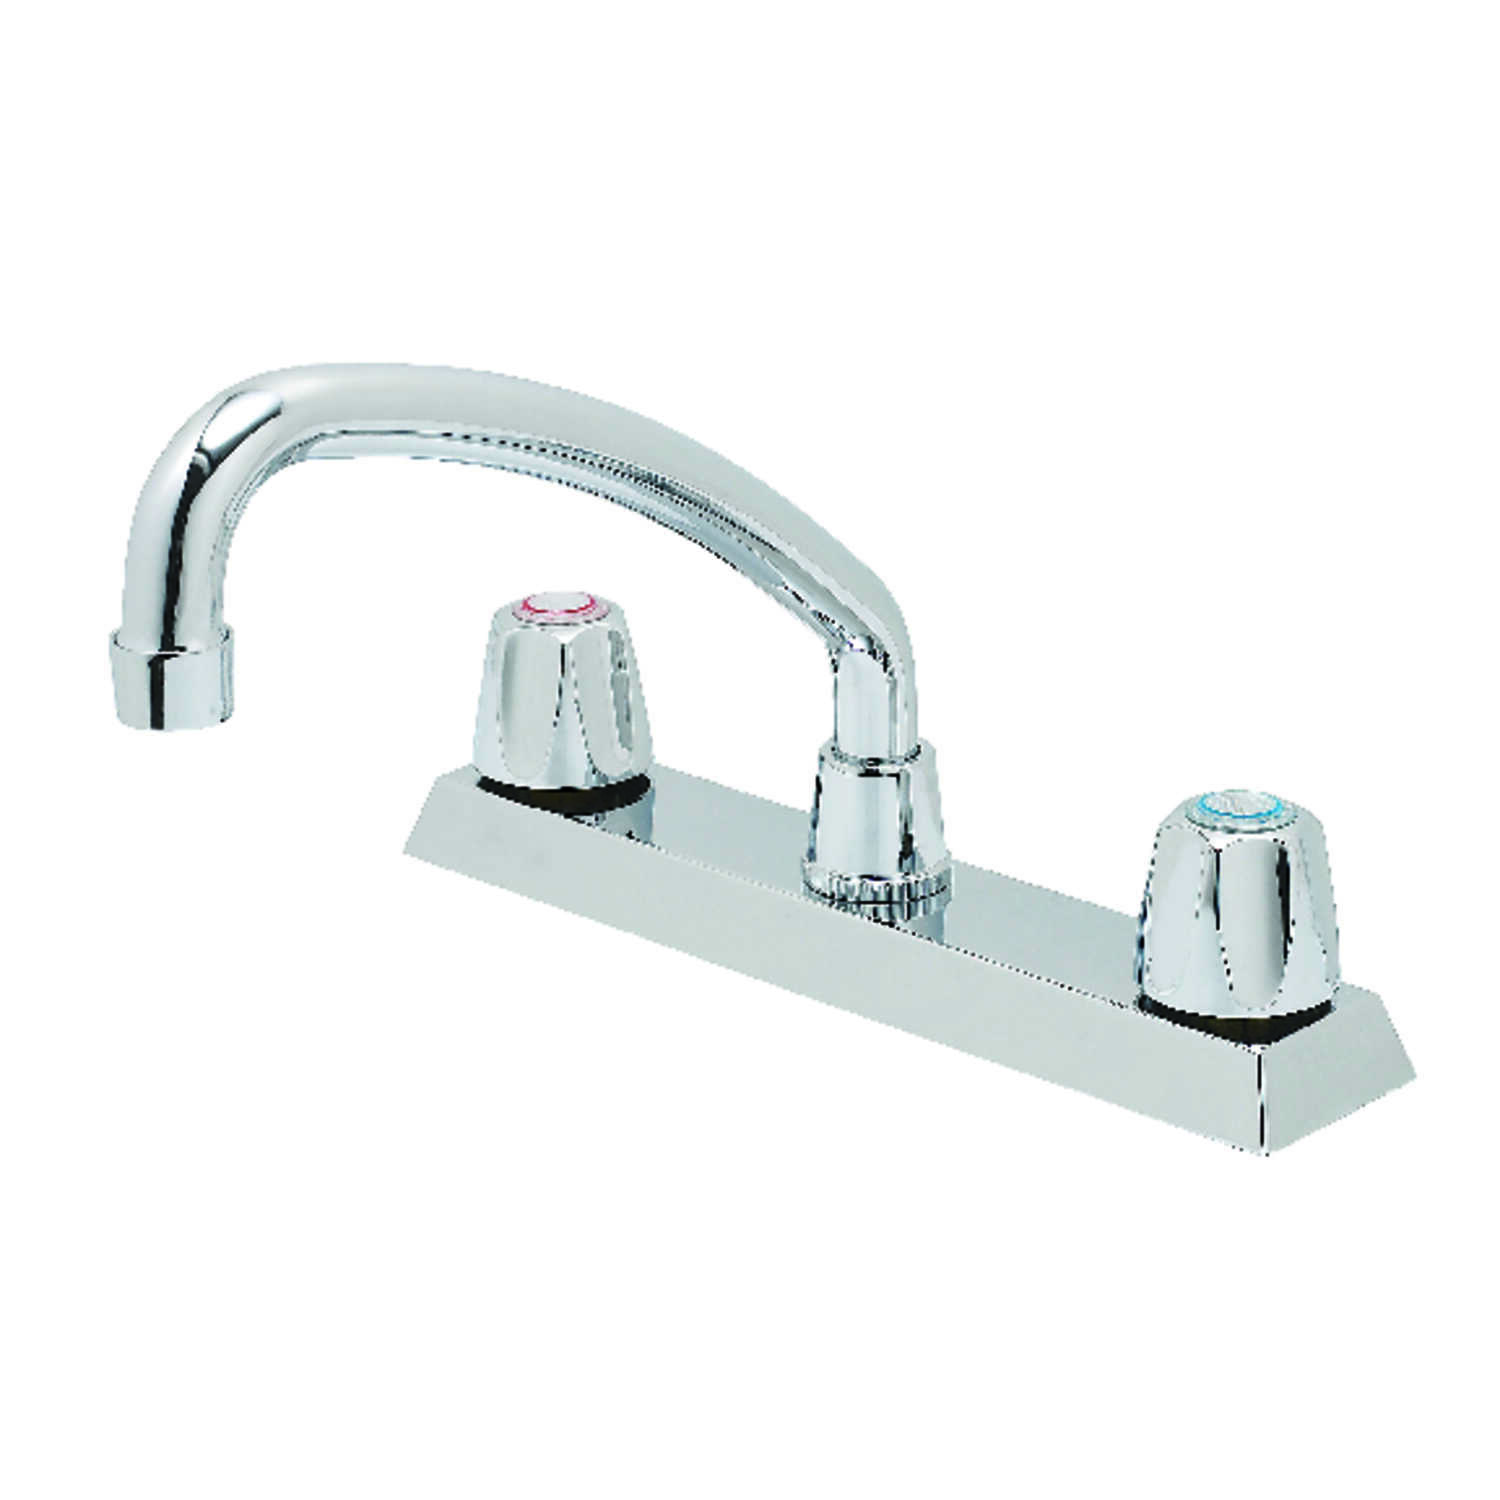 OakBrook  Washerless Cartridge  Two Handle  Chrome  Kitchen Faucet